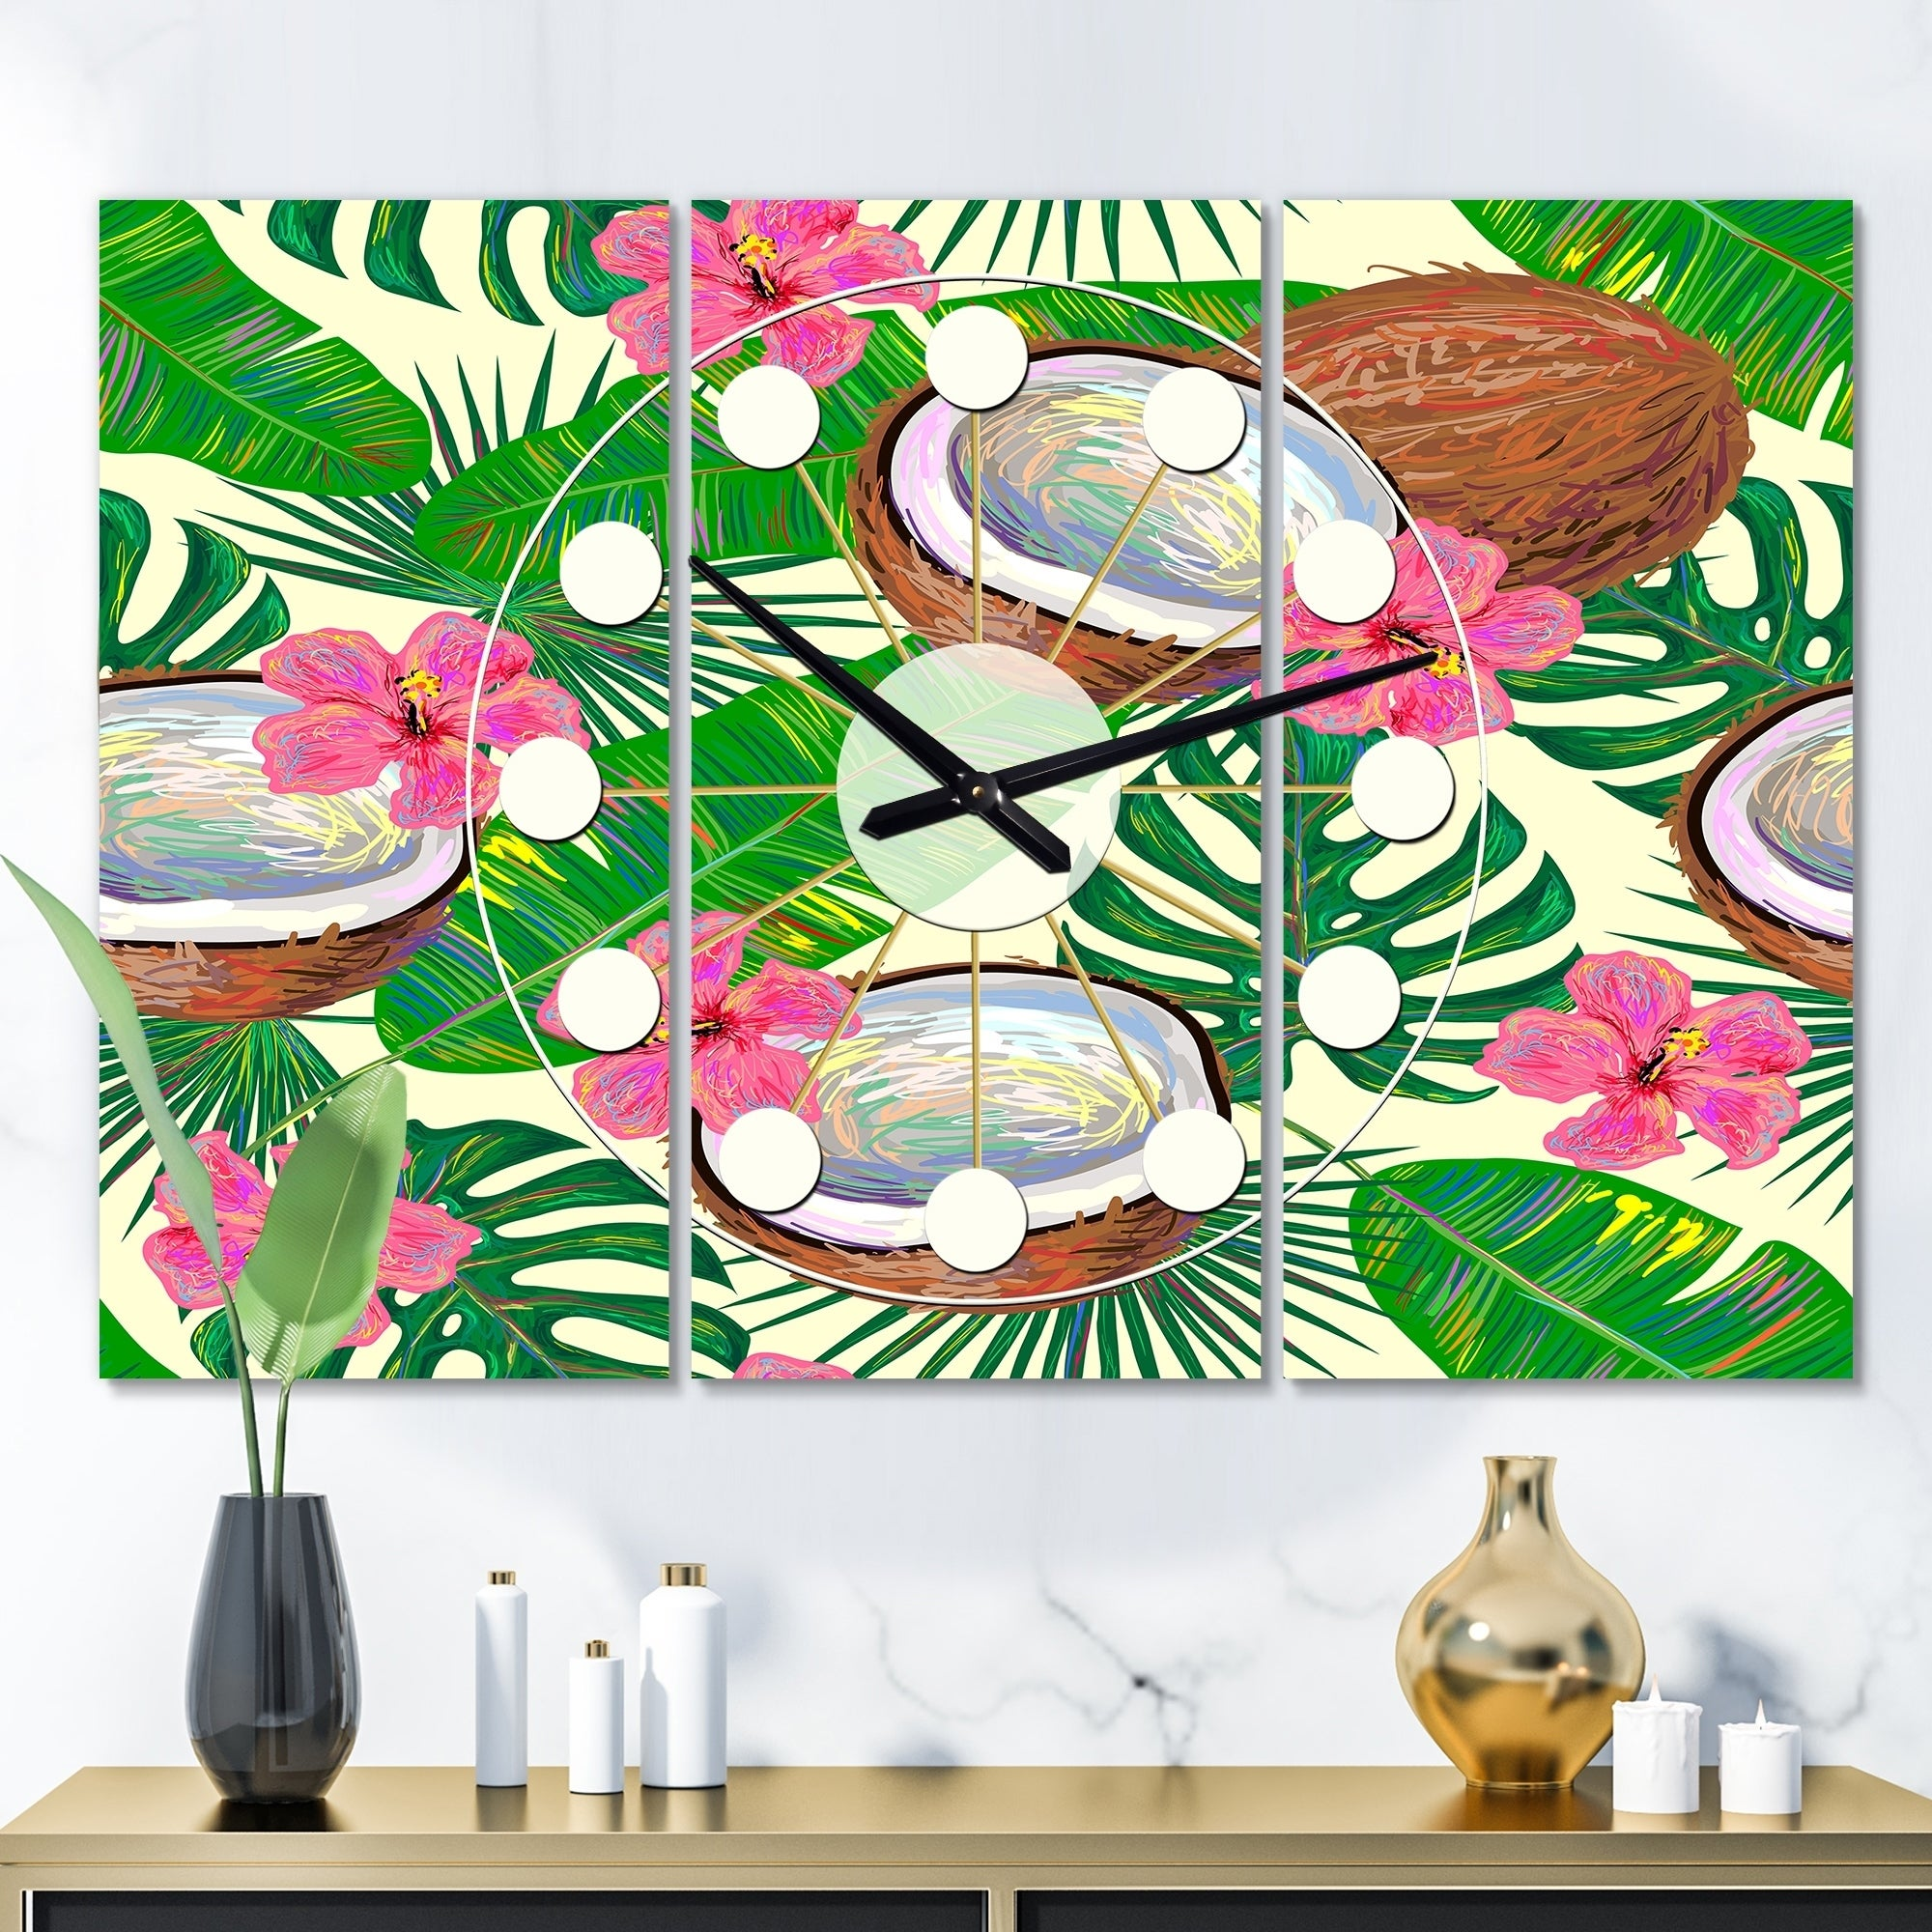 Designart Tropical Cooconut And Jungle Flowers Oversized Mid Century Wall Clock 3 Panels On Sale Overstock 28736005